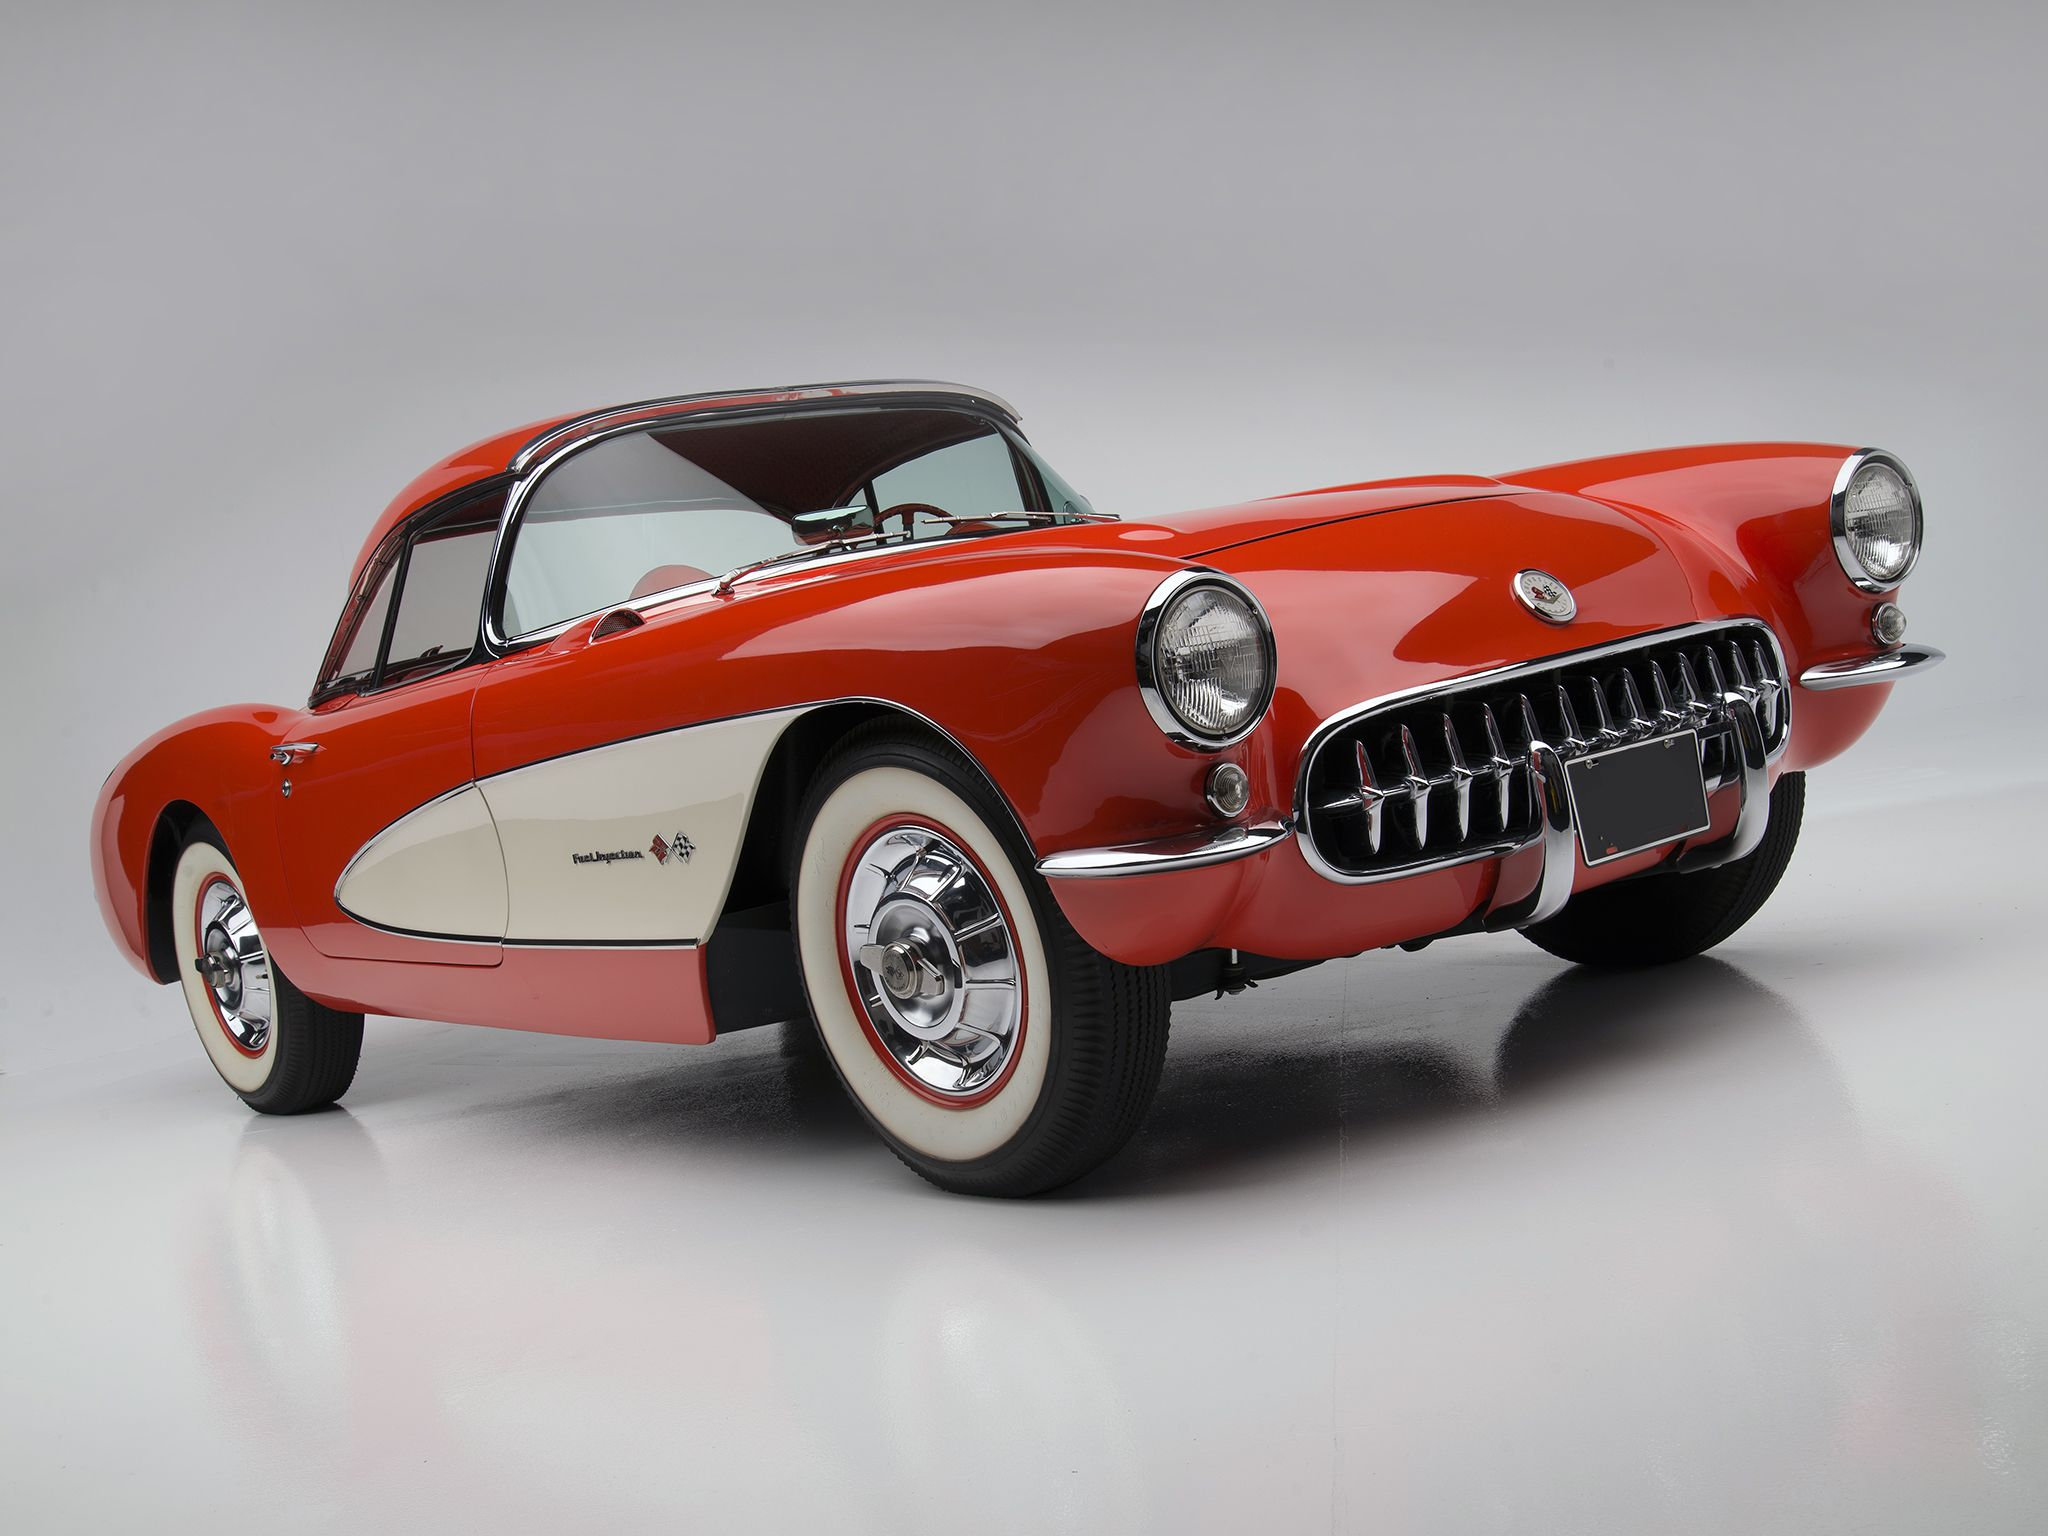 1957 Chevrolet Corvette C1 Fuel Injection http://classic-auto-trader ...